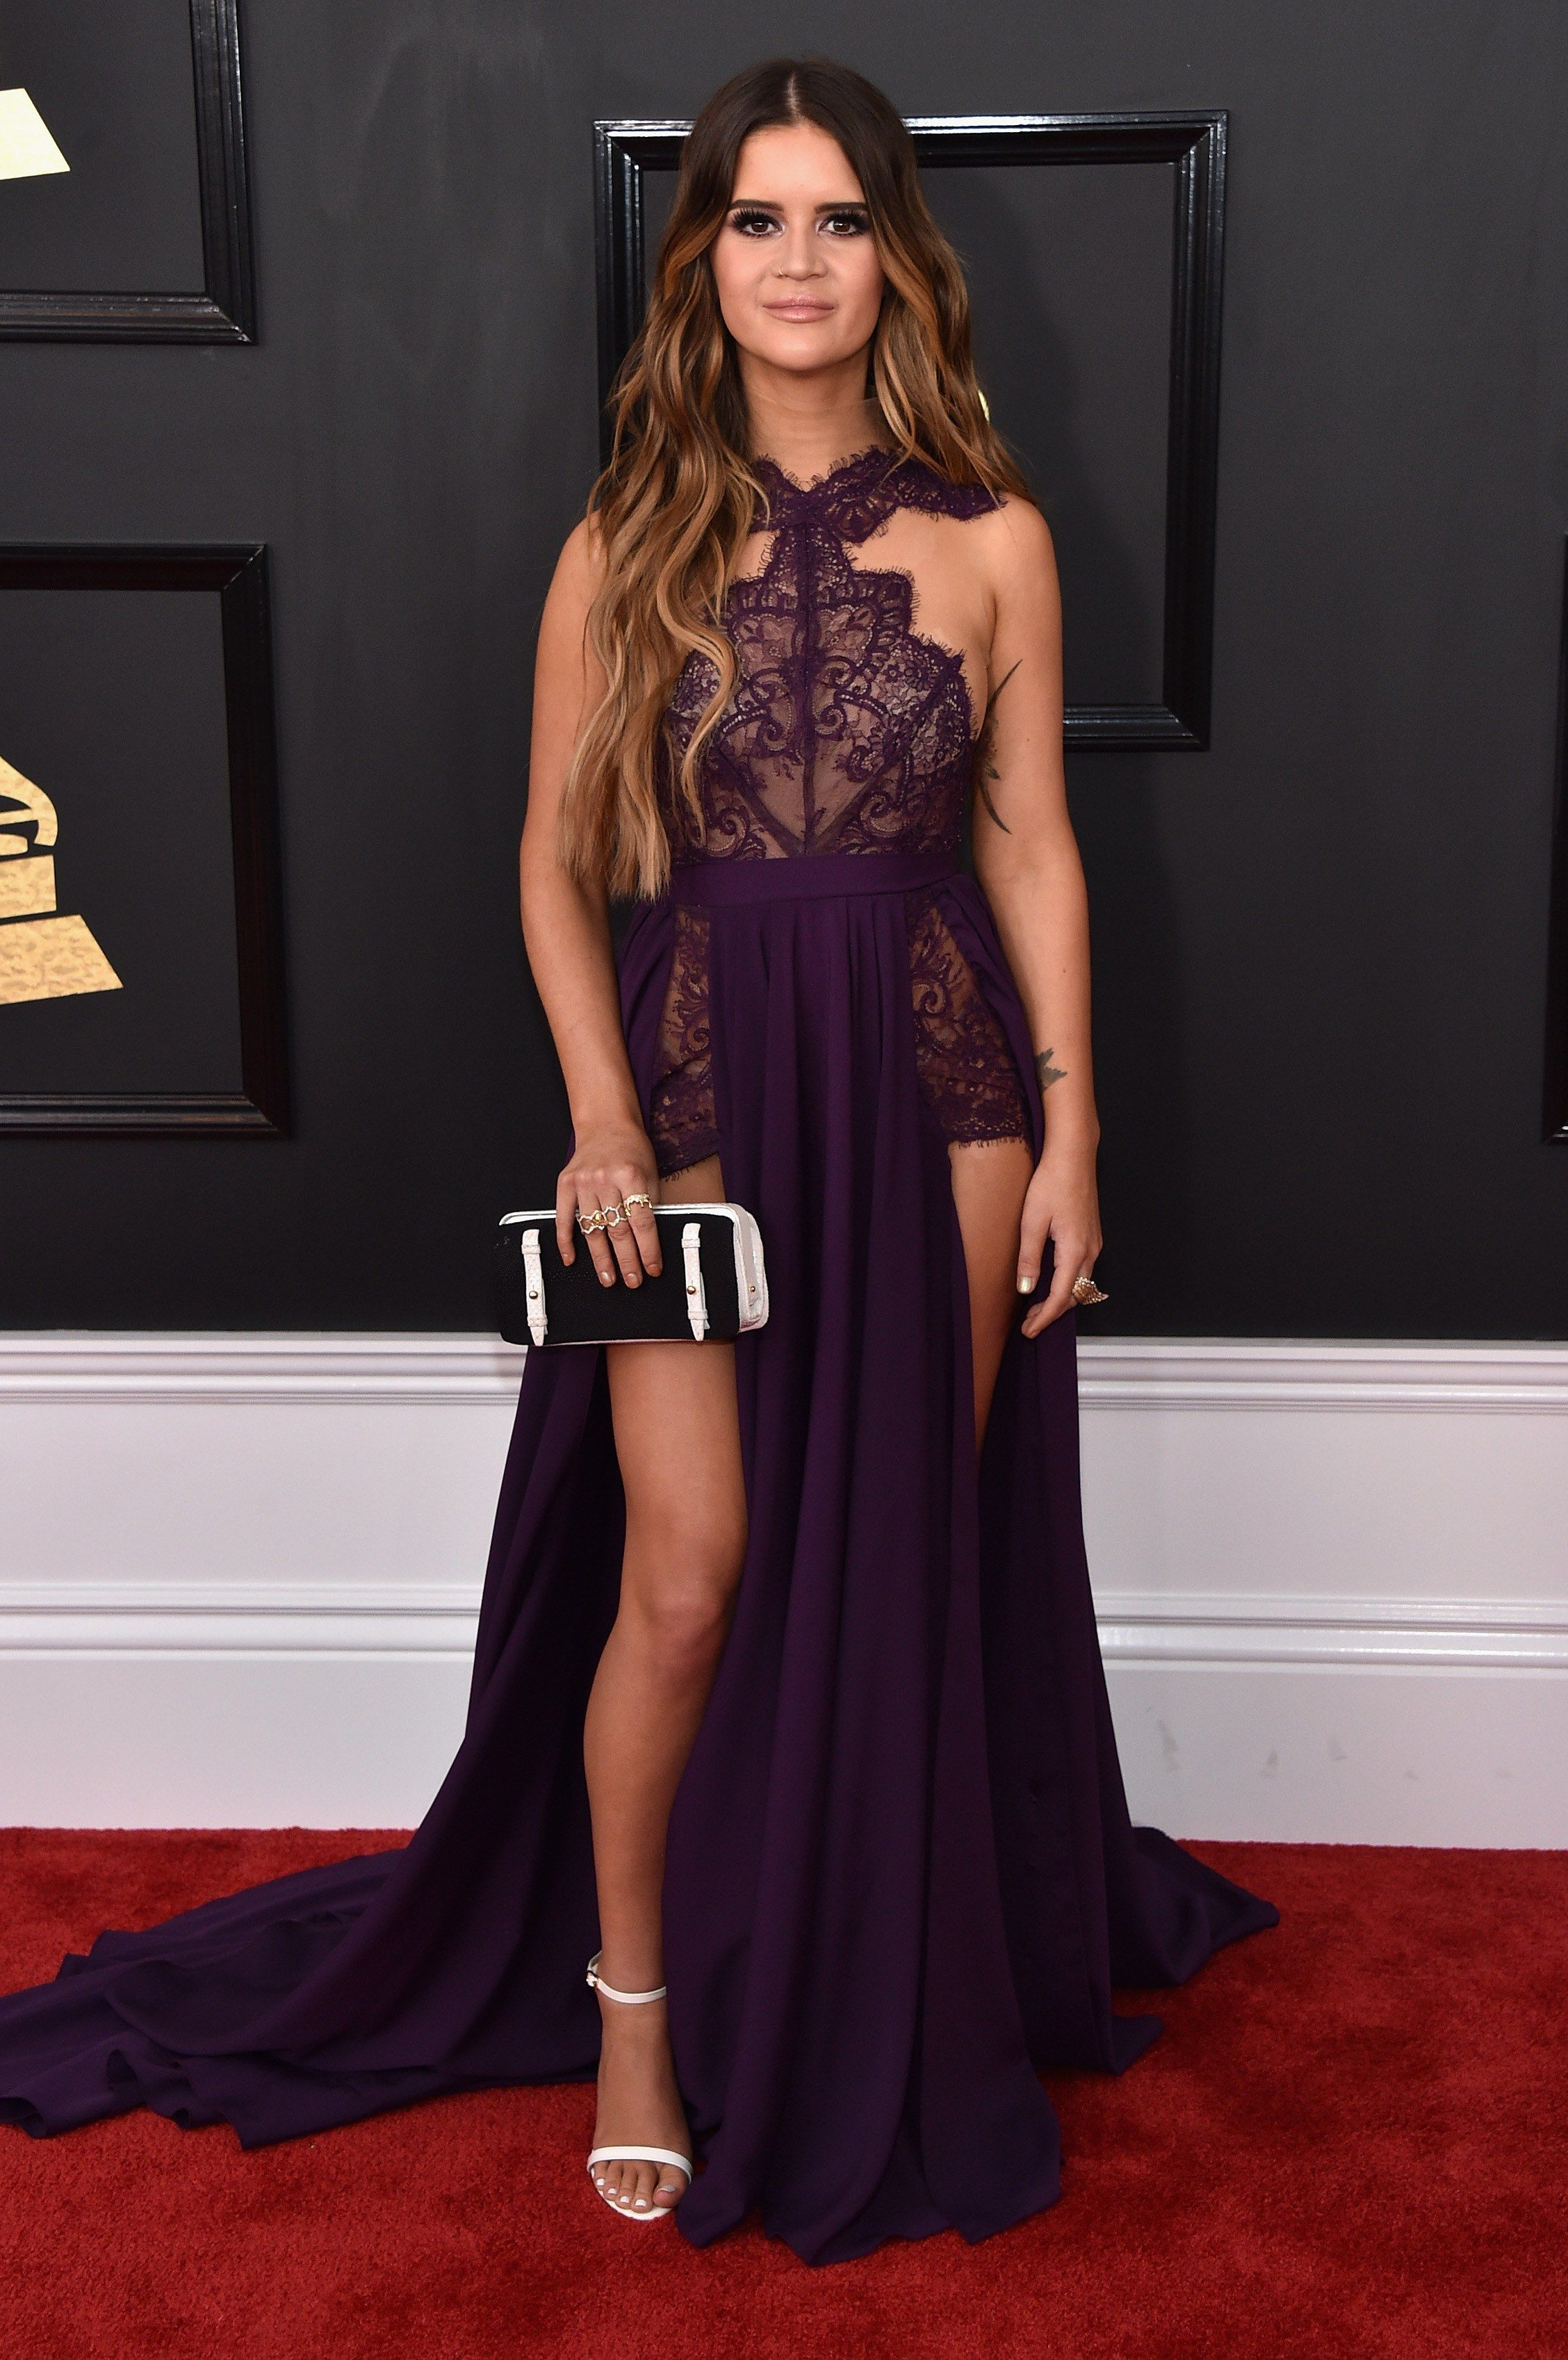 Grammys fashionulive from the red carpet maren morris red